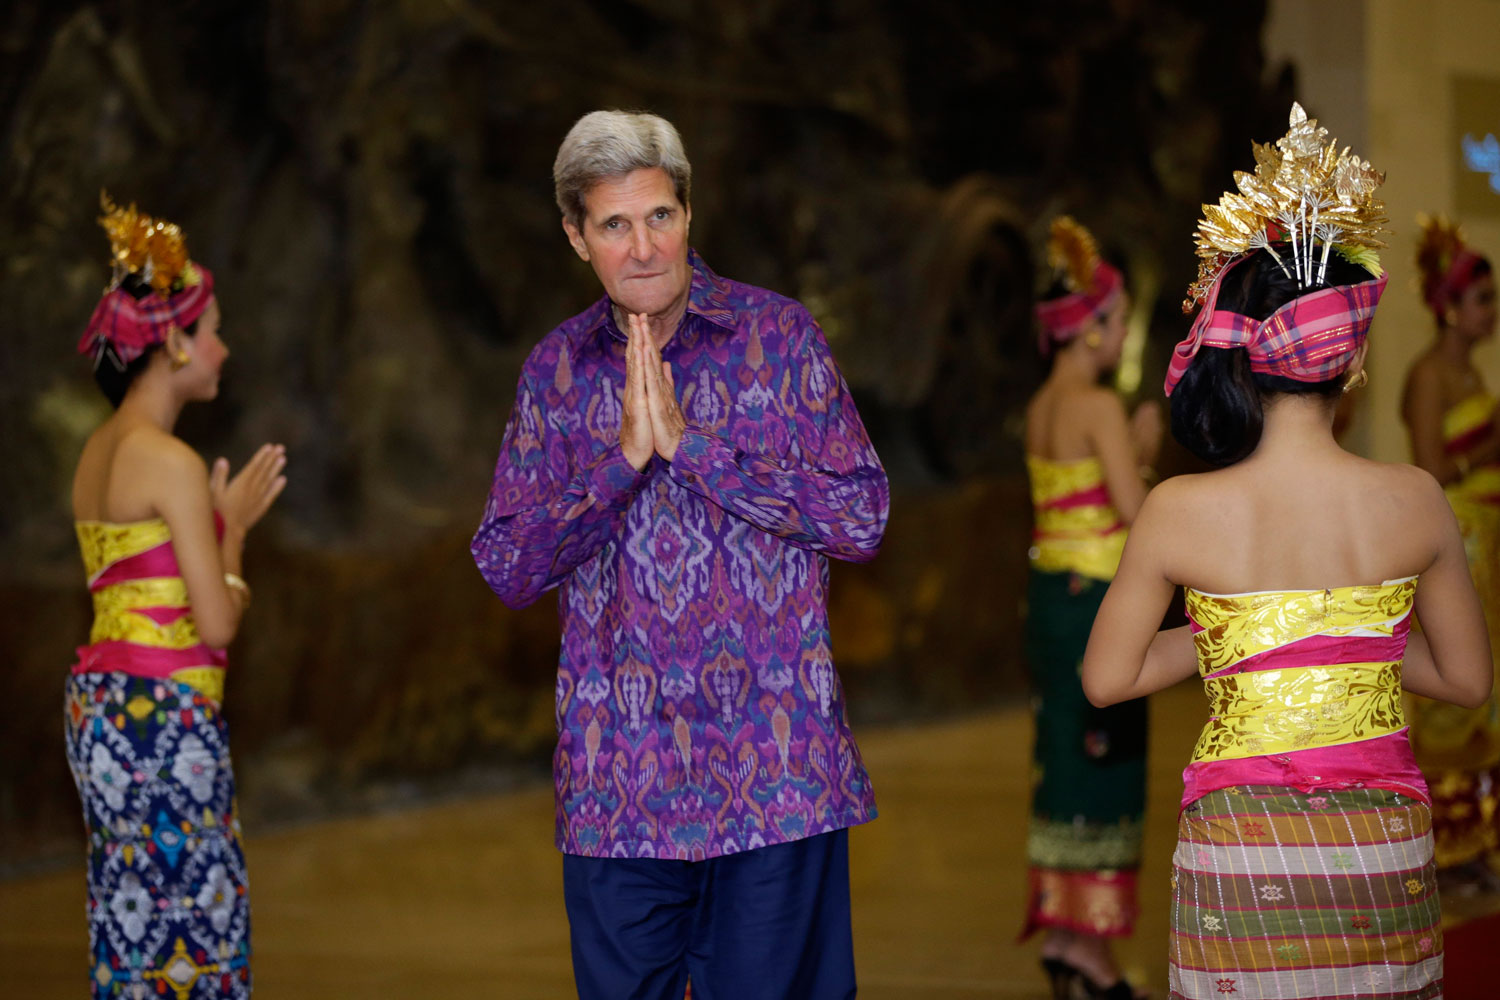 Oct. 7, 2013. U.S. Secretary of State John Kerry, wearing 'endek', a traditional Balinese woven fabric, arrives at a dinner for leaders of the Asia-Pacific Economic Cooperation forum in Bali.